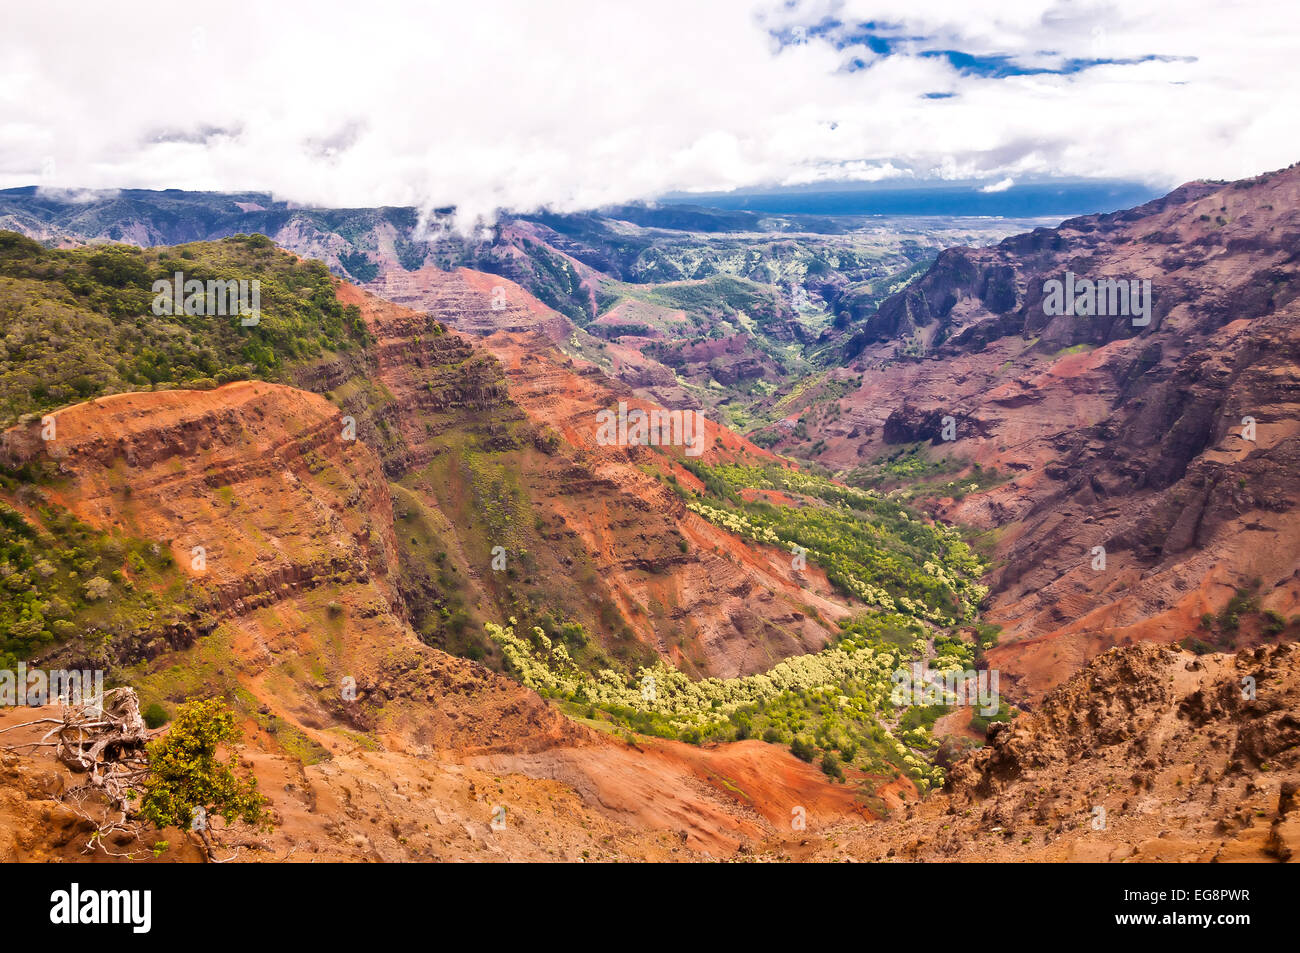 Amazing Waimea Canyon in Kauai, Hawaii Islands - Stock Image